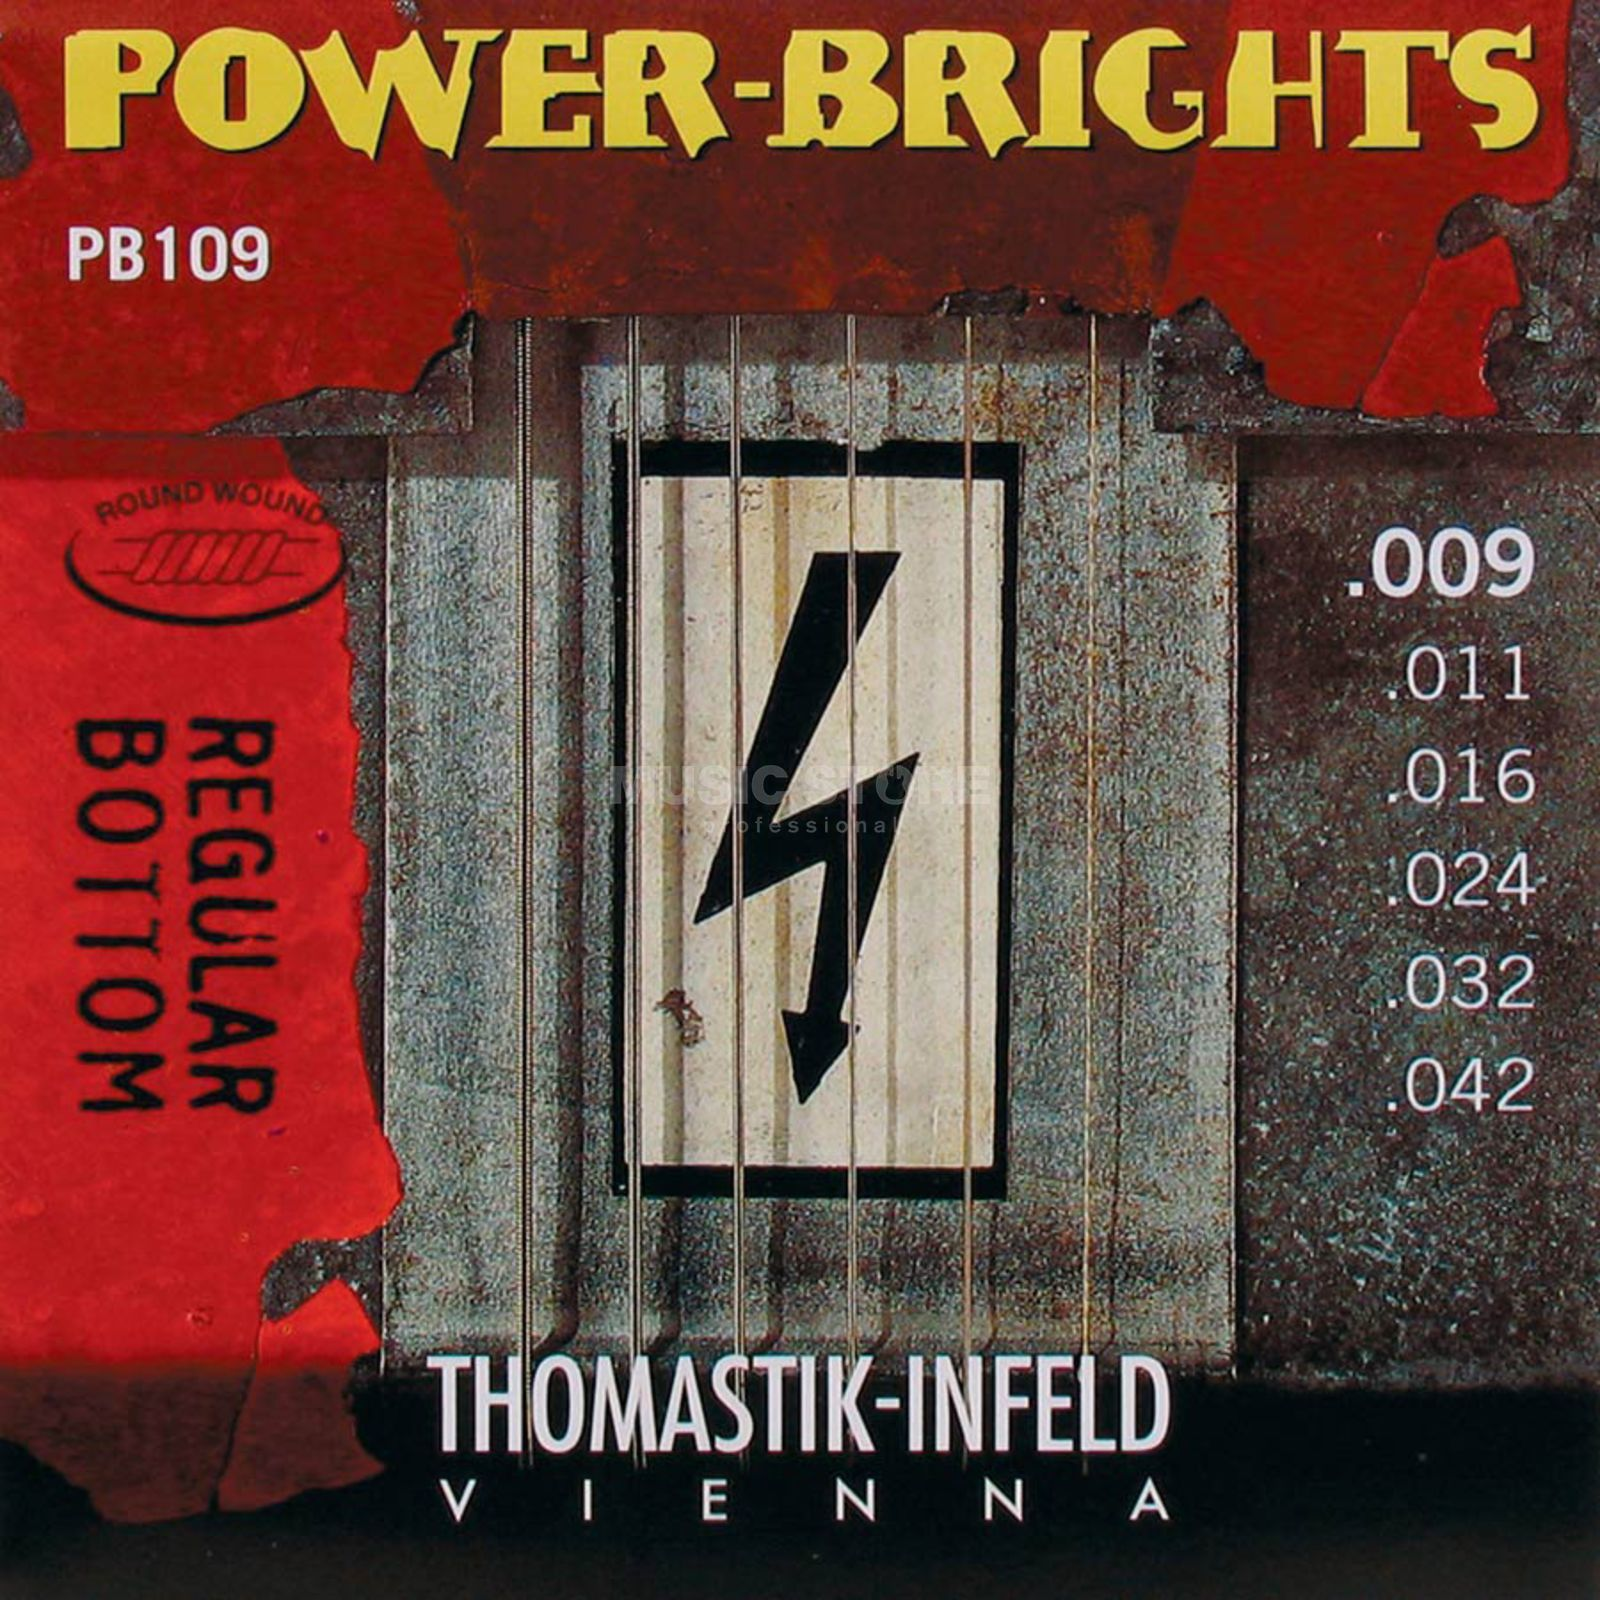 Thomastik E-Guitar Strings PB 109 09-42 Power Brights Regular Bottom Product Image